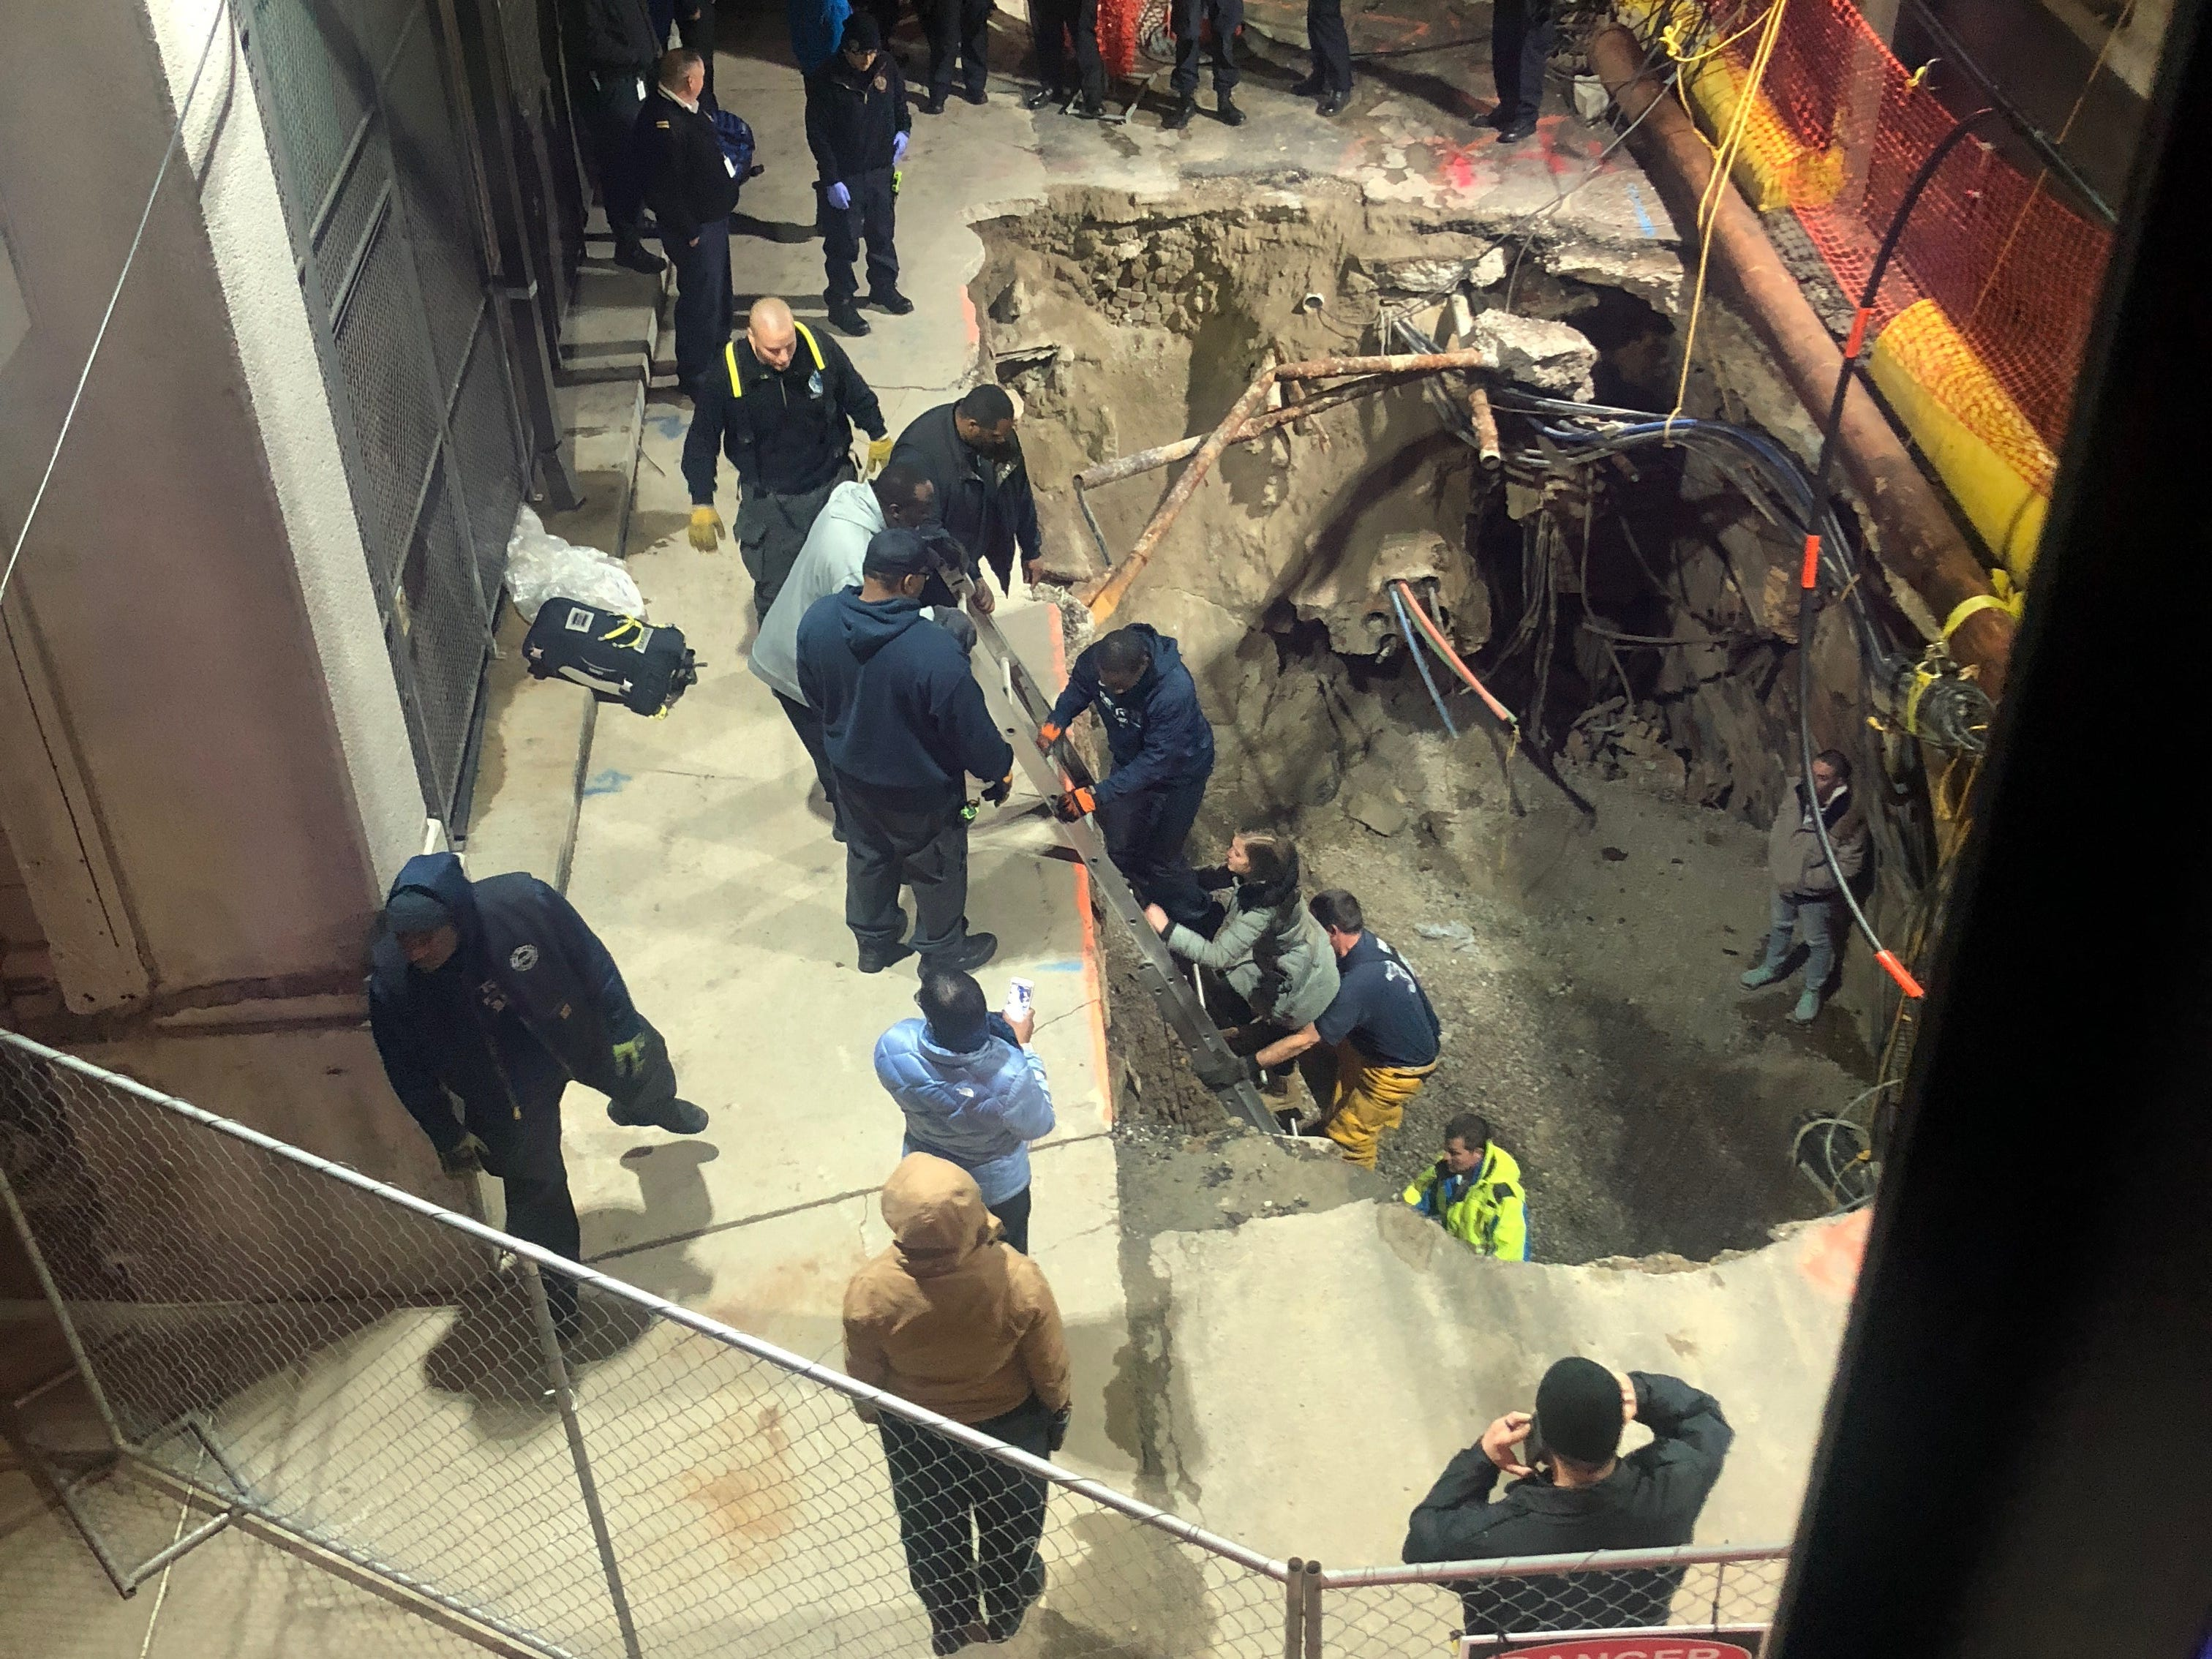 Woman rescued from sinkhole outside news building